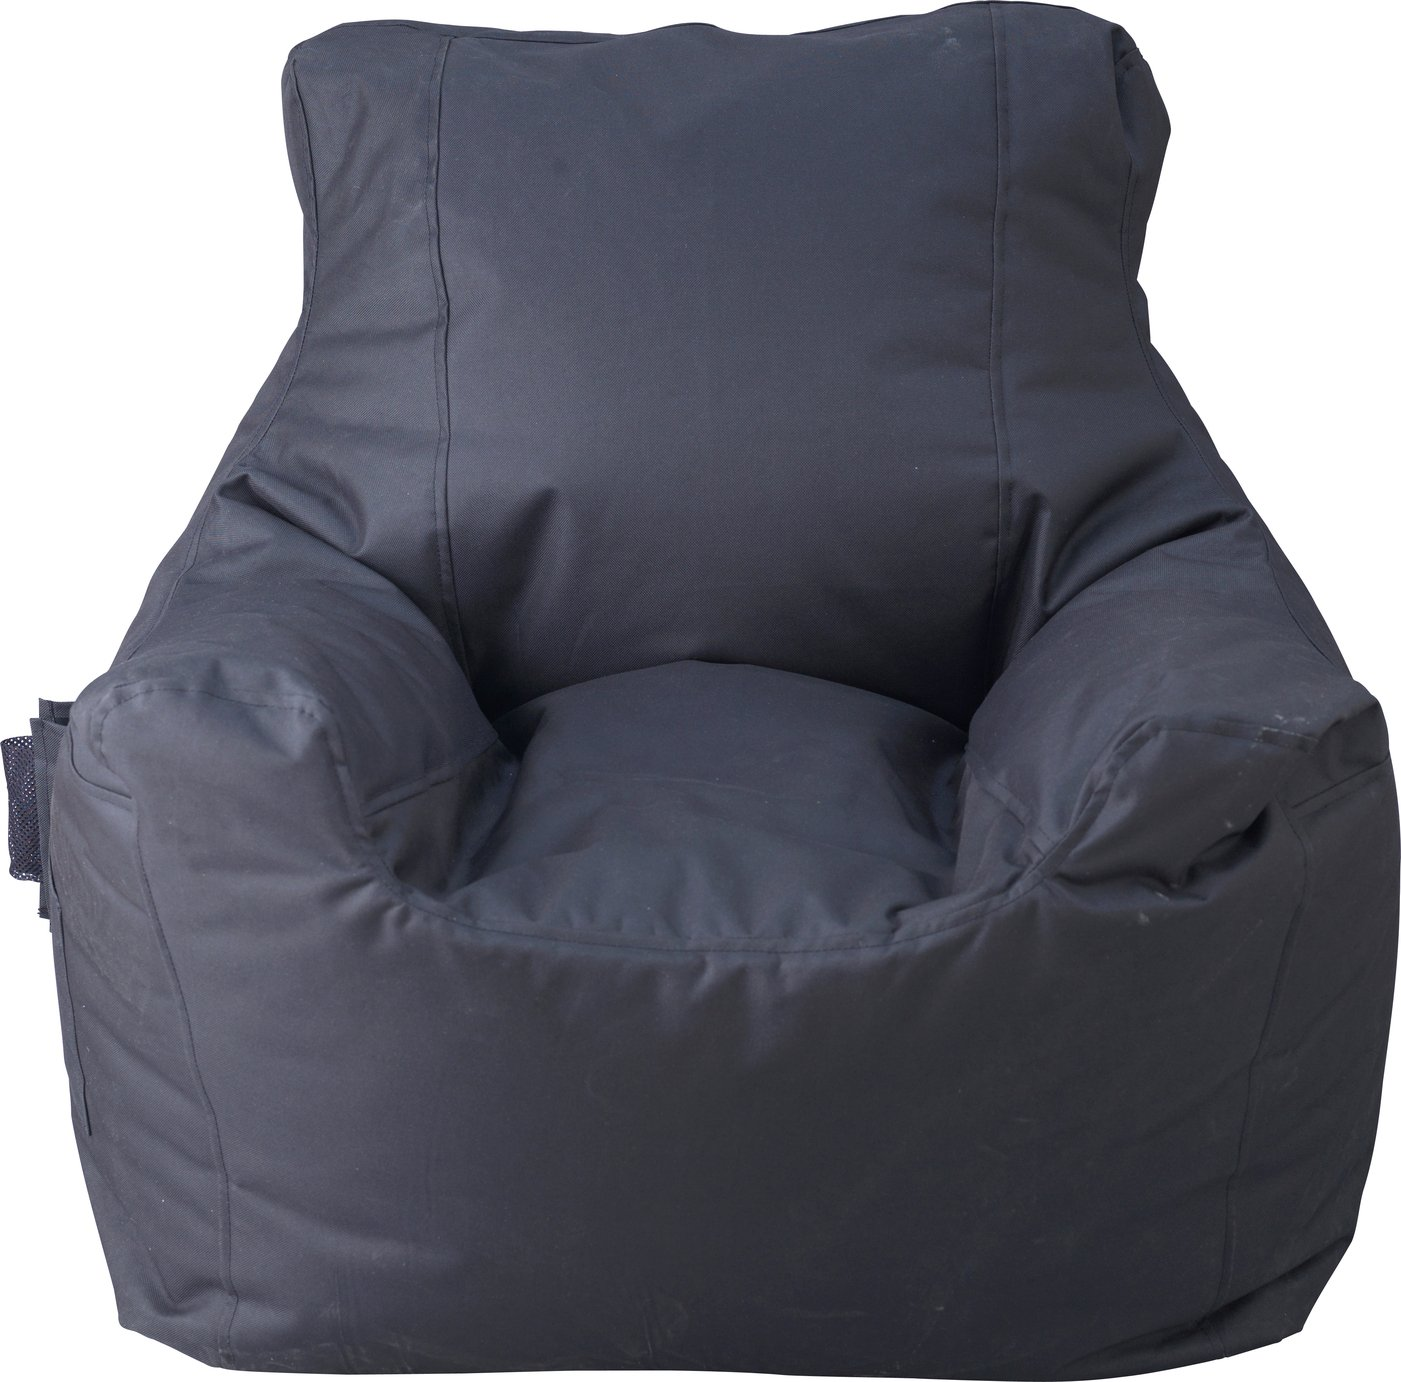 bean bag gaming chair argos covers used buy home large fabric teenagers beanbag black beanbags click to zoom